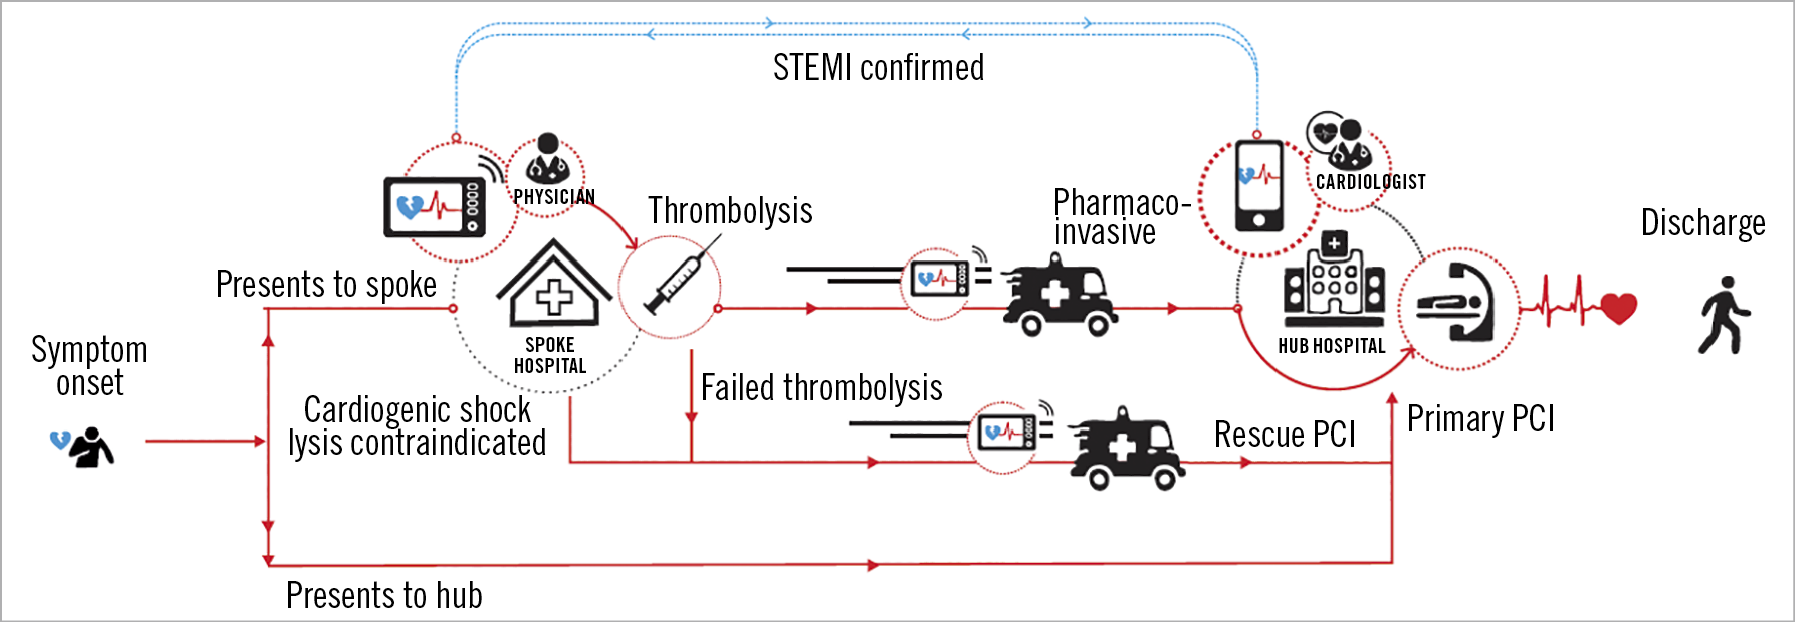 """Figure 1. The two treatment pathways that a STEMI patient may take depending on whether the initial presentation is at the """"hub"""" hospital or """"spoke"""" hospital."""